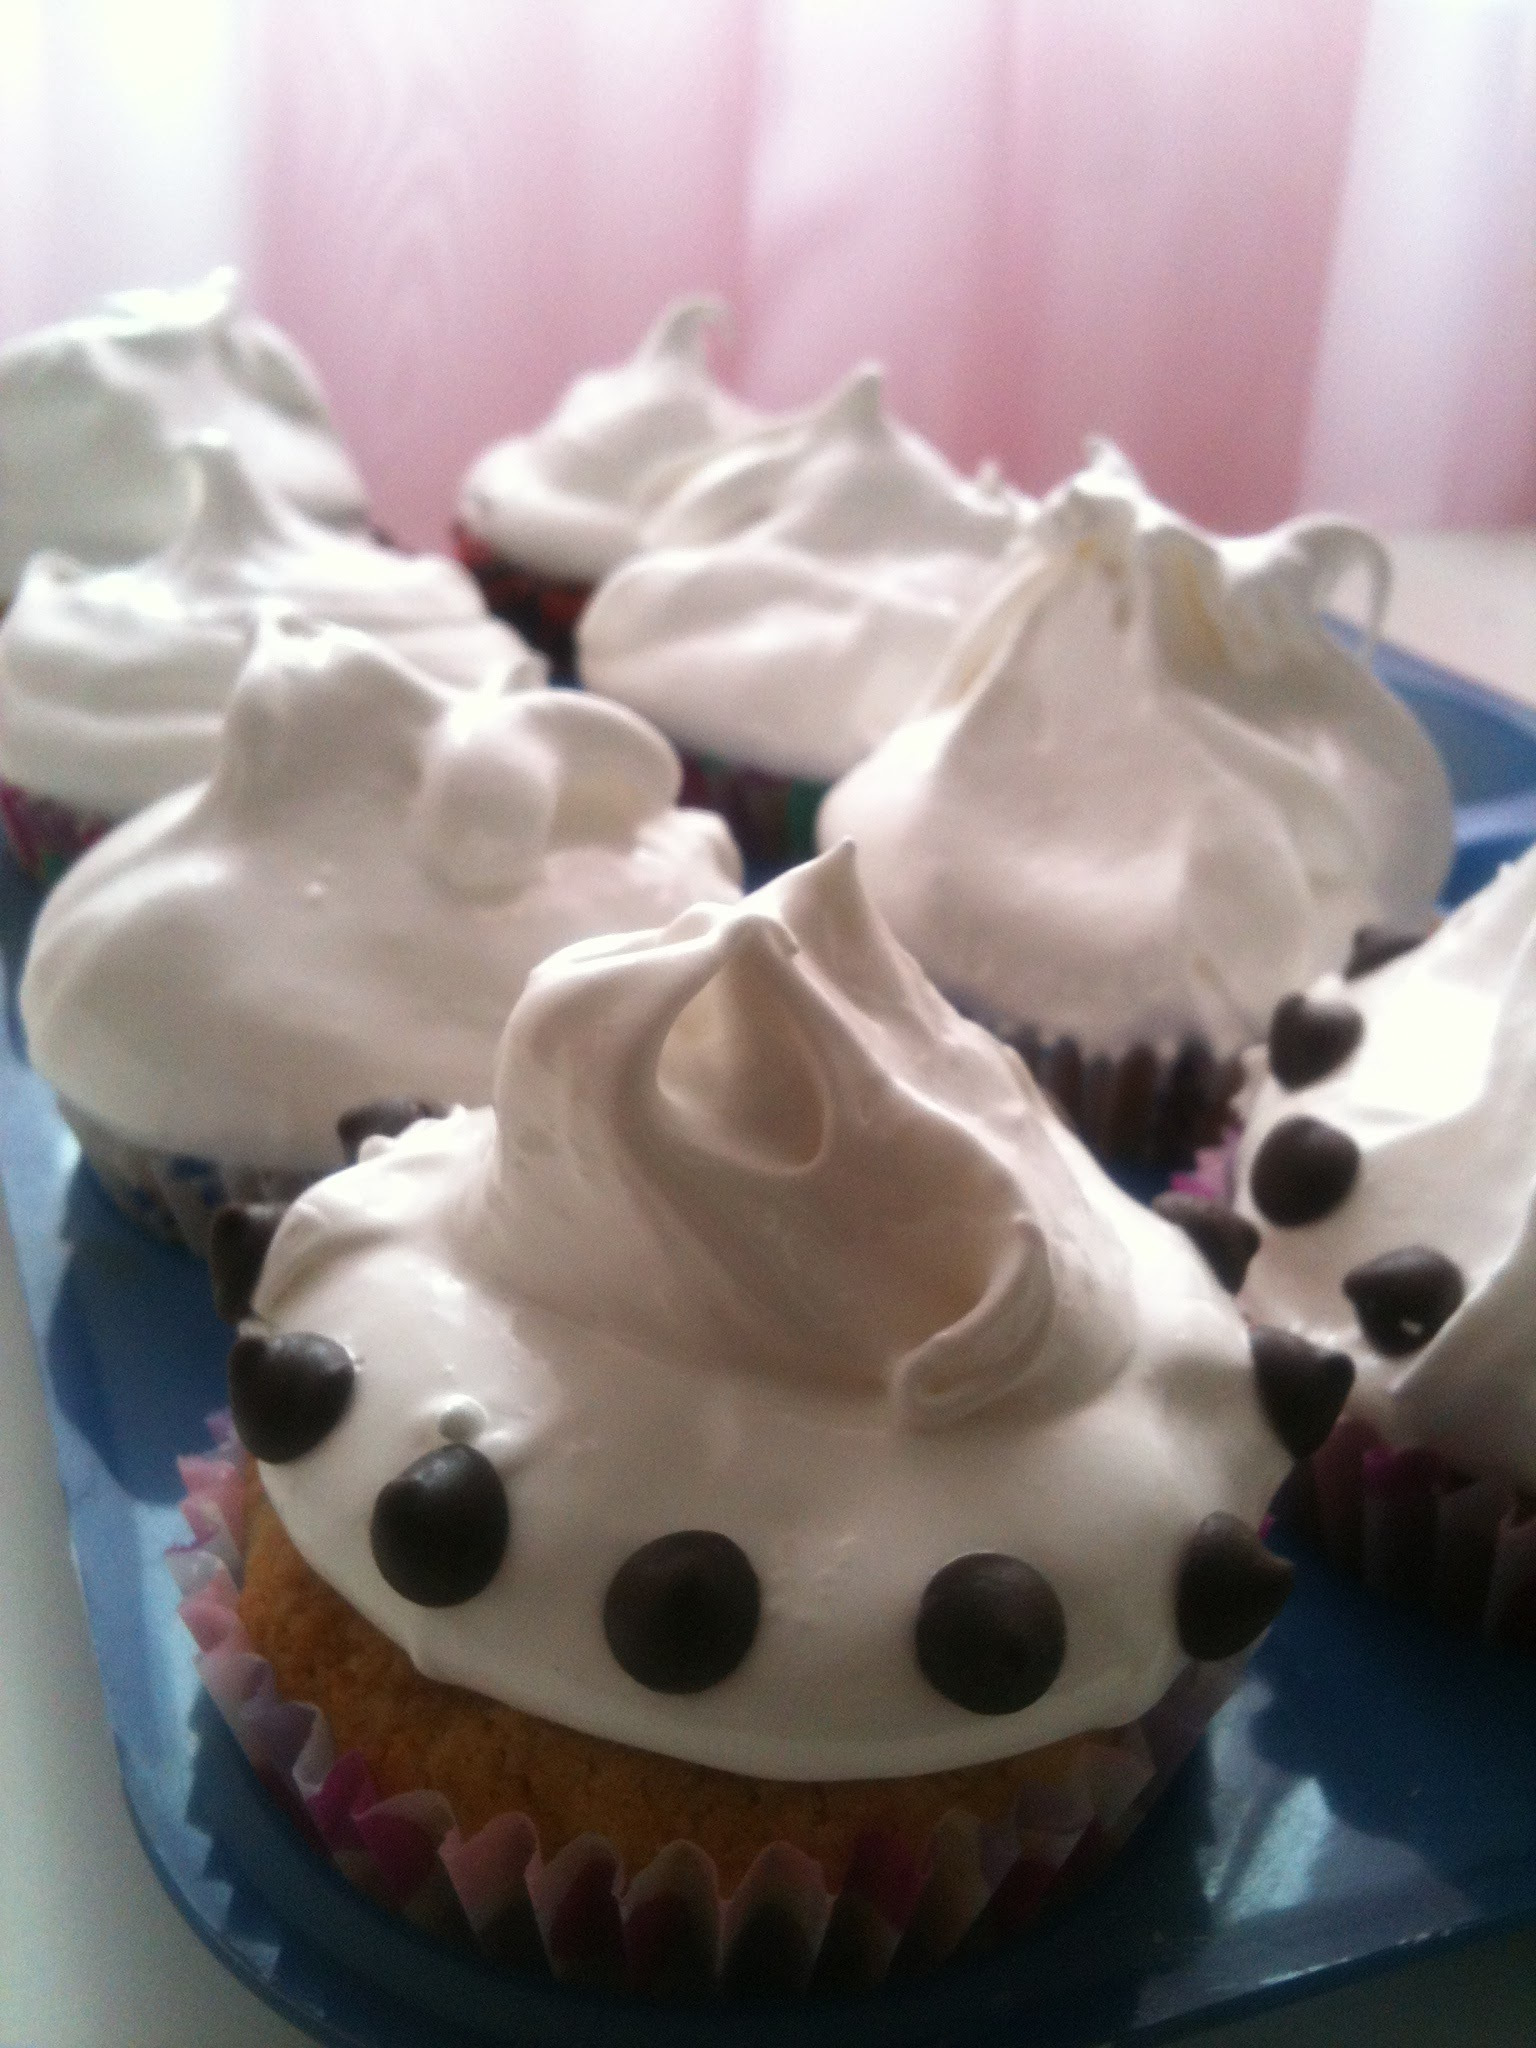 Cupcake con chips de chocolate y merengue de almendras - Jumbo chocolate chips cupcake with almond meringue topping